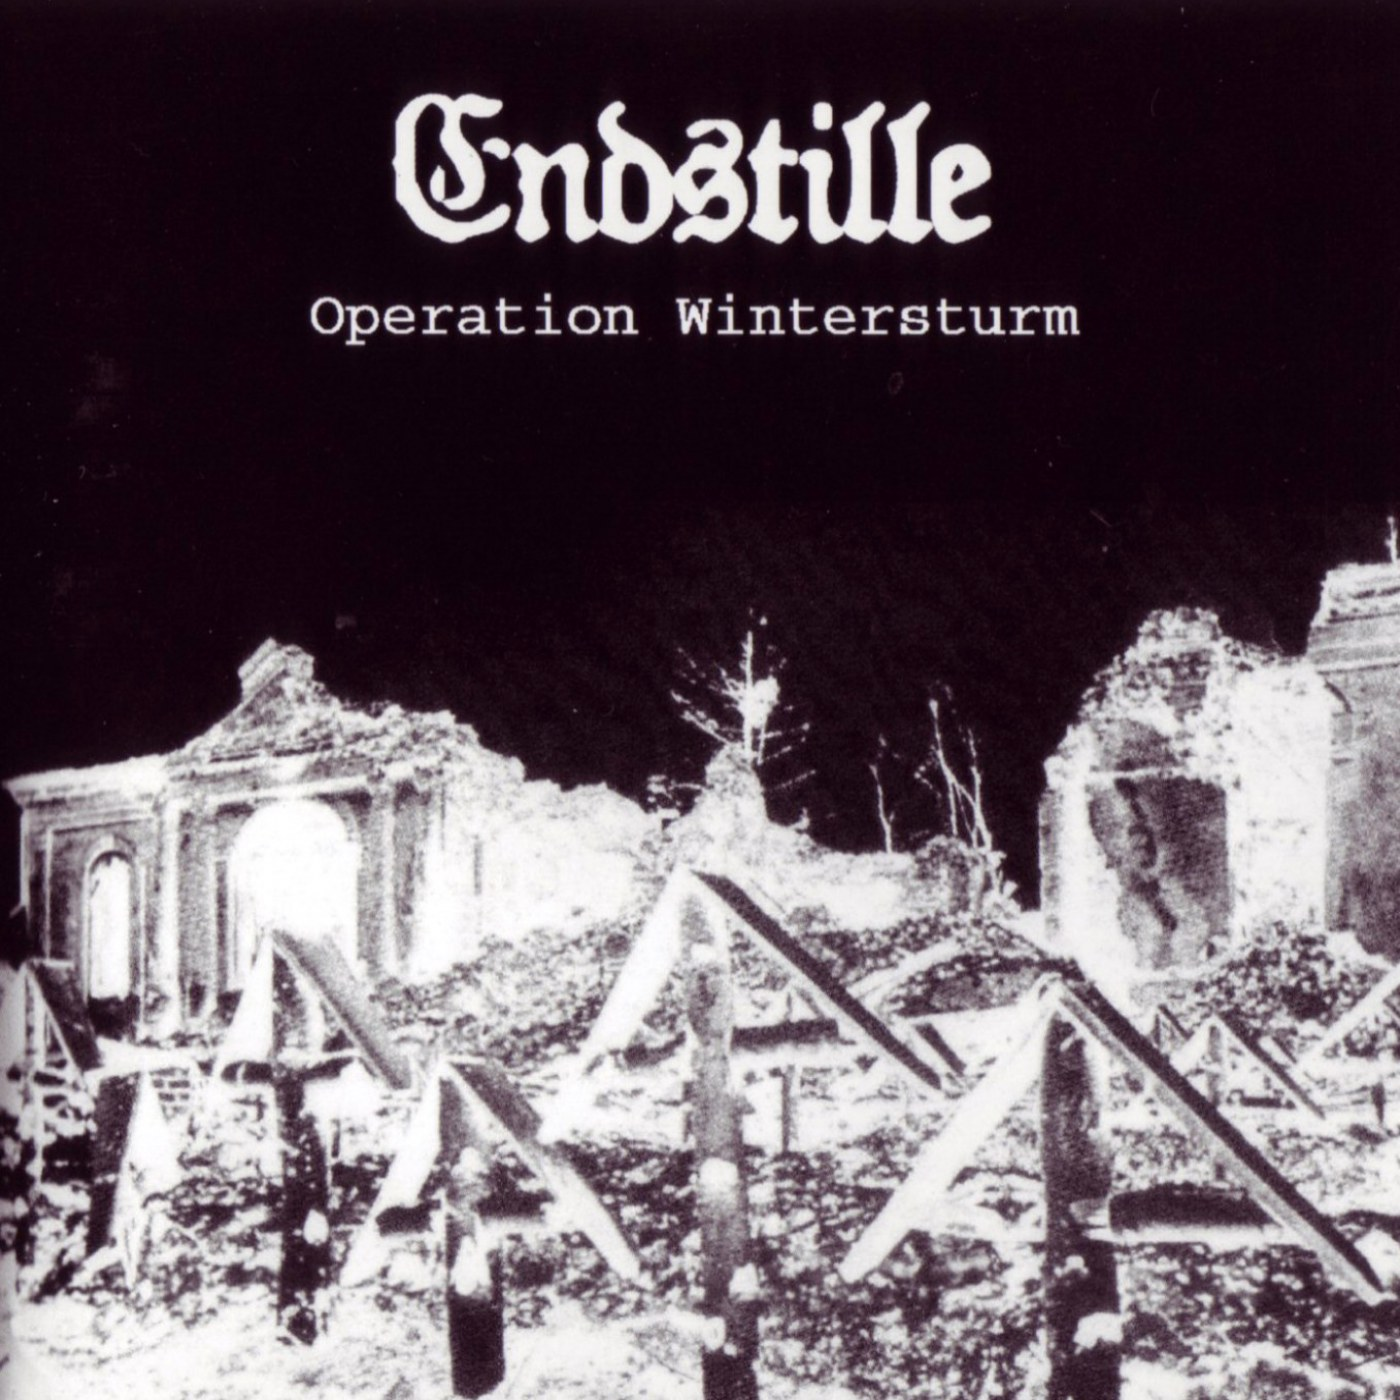 Review for Endstille - Operation Wintersturm